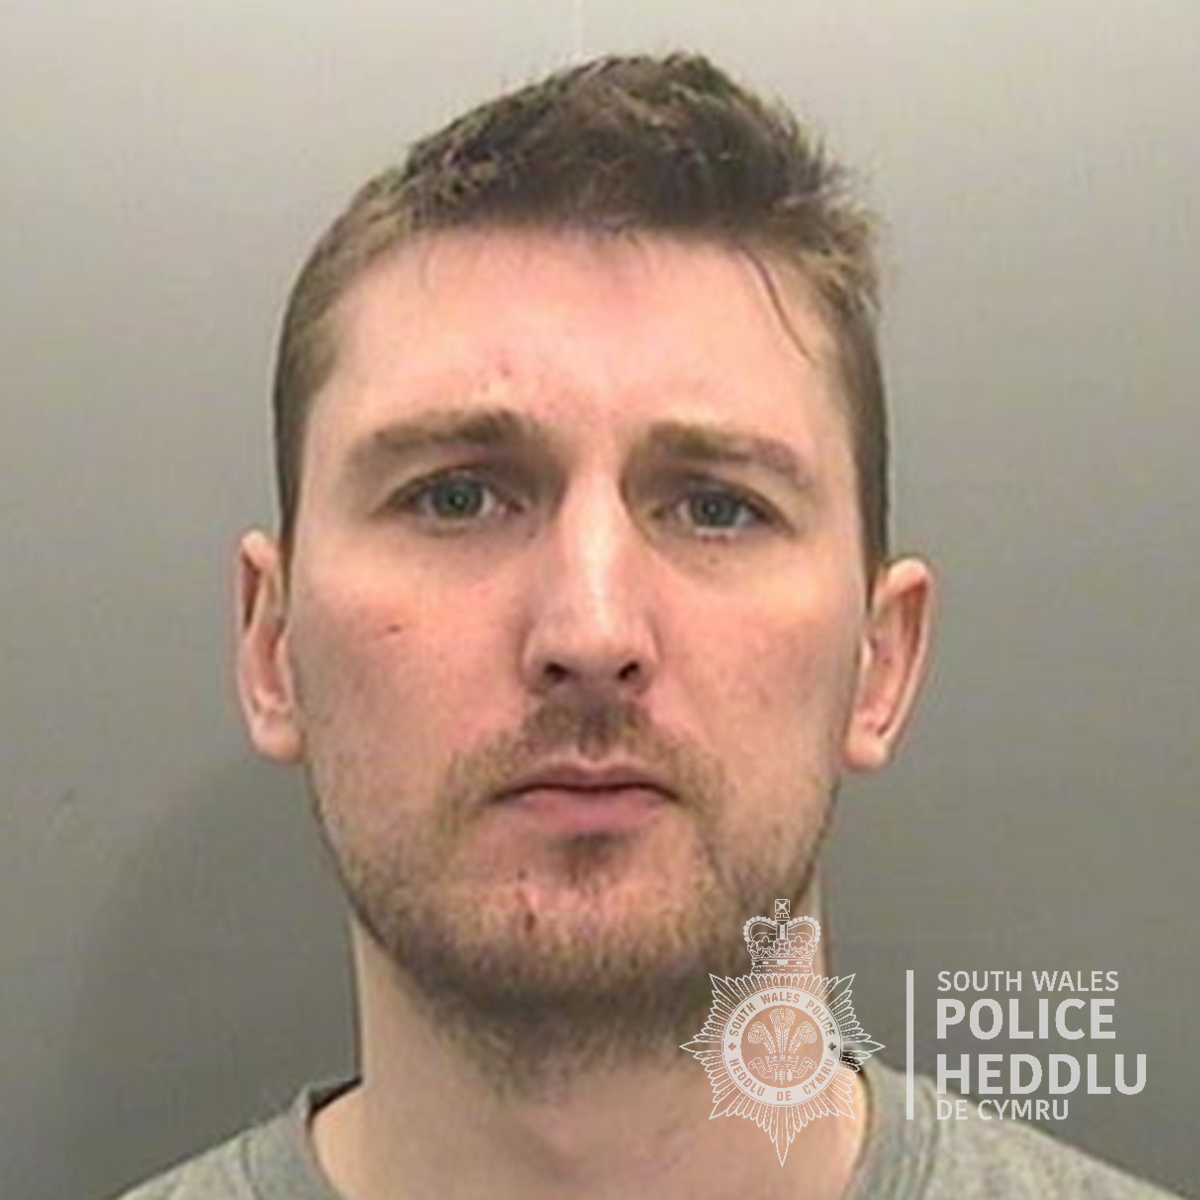 Kyle Bowen was jailed for life with a minimum of 16 years for murdering dog-exhibitor David Williams